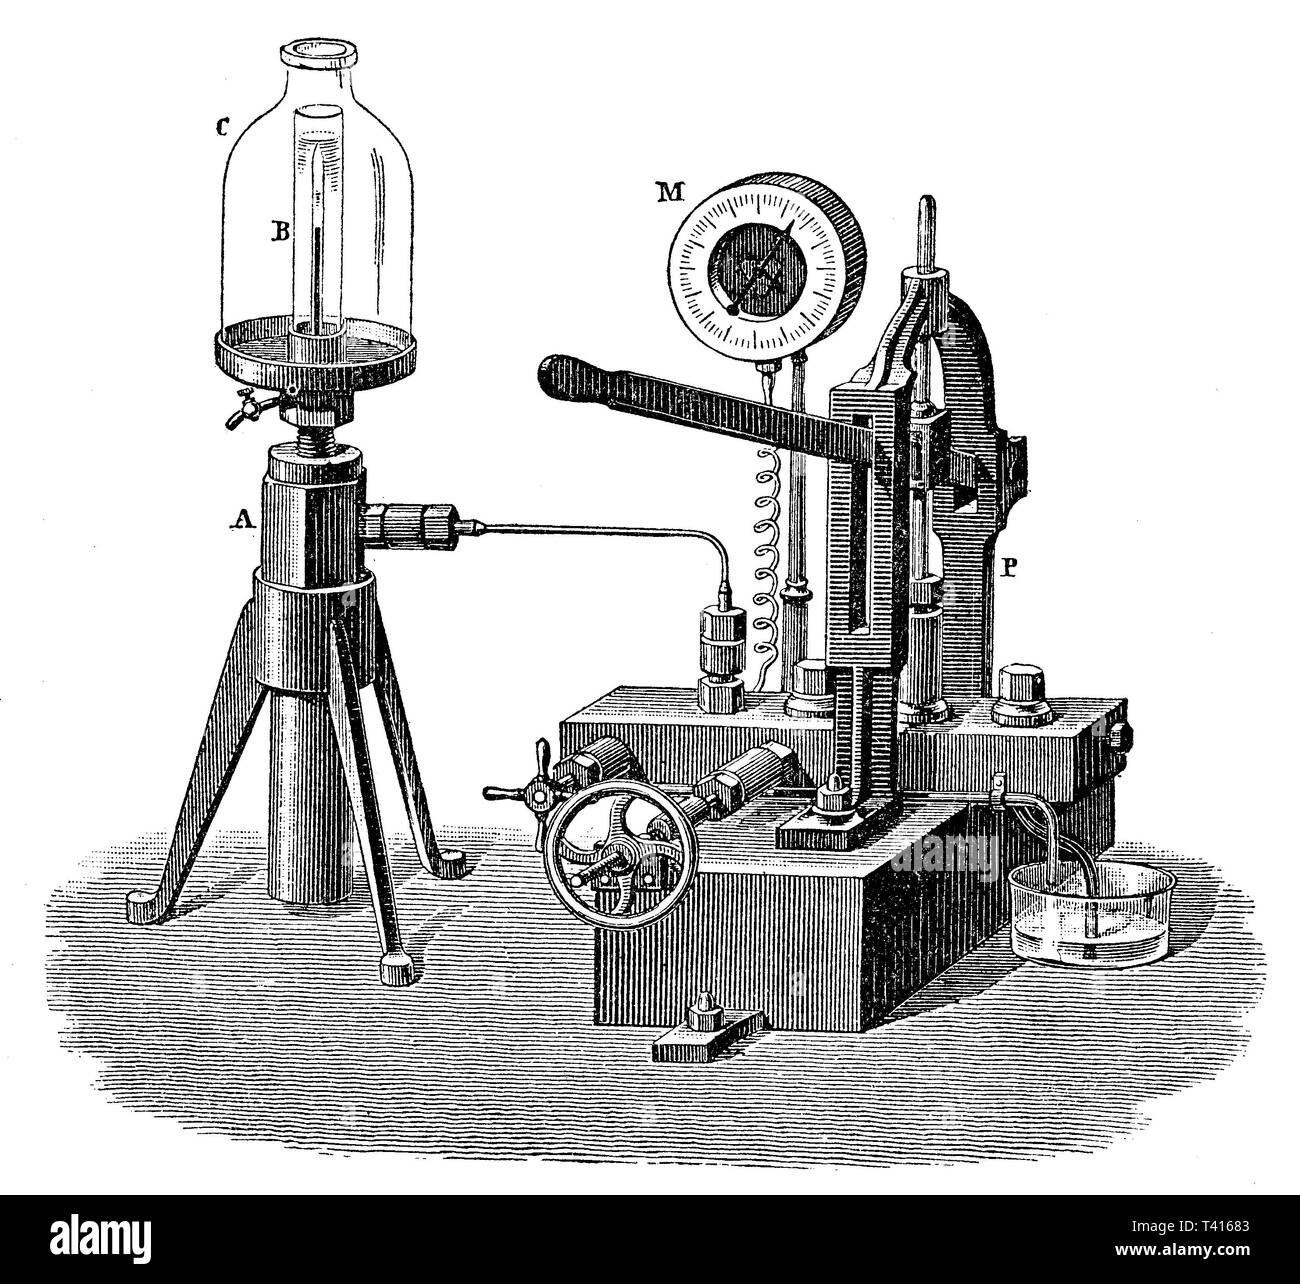 Cailletet apparatus for petroleum gas liquefaction. Louis Paul Cailletet employed a combination of compression, cooling, and expansion of the gas. - Stock Image